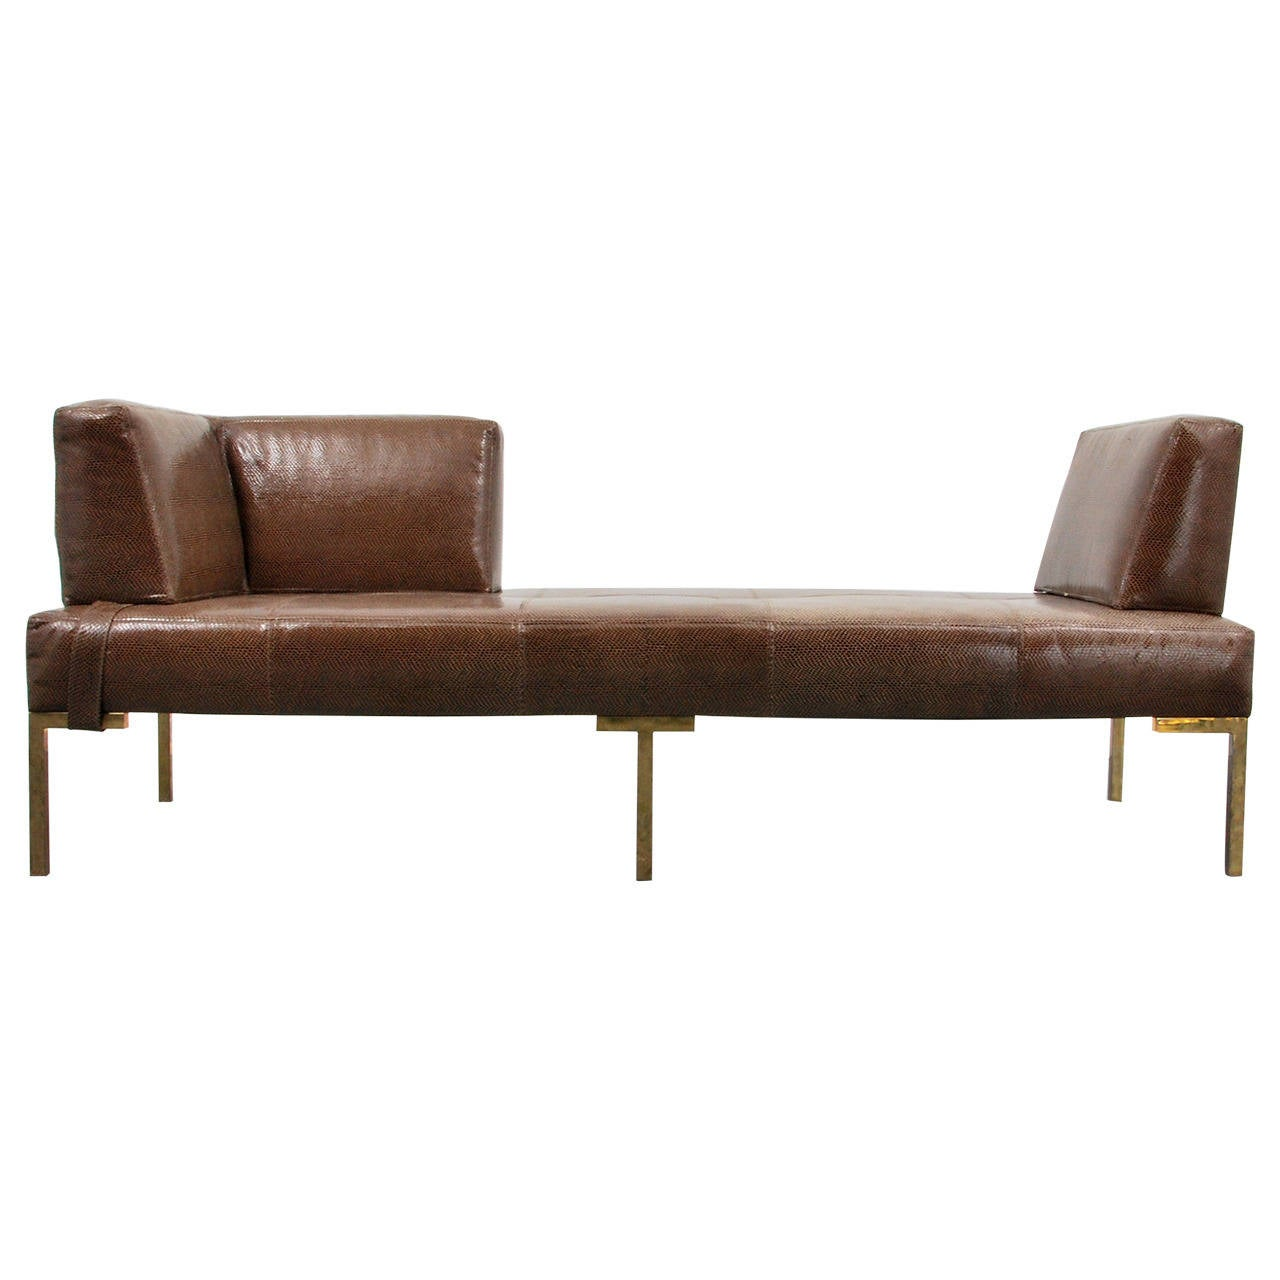 Luigi gentile leather daybeds or chaise lounges two for Chaise and lounge